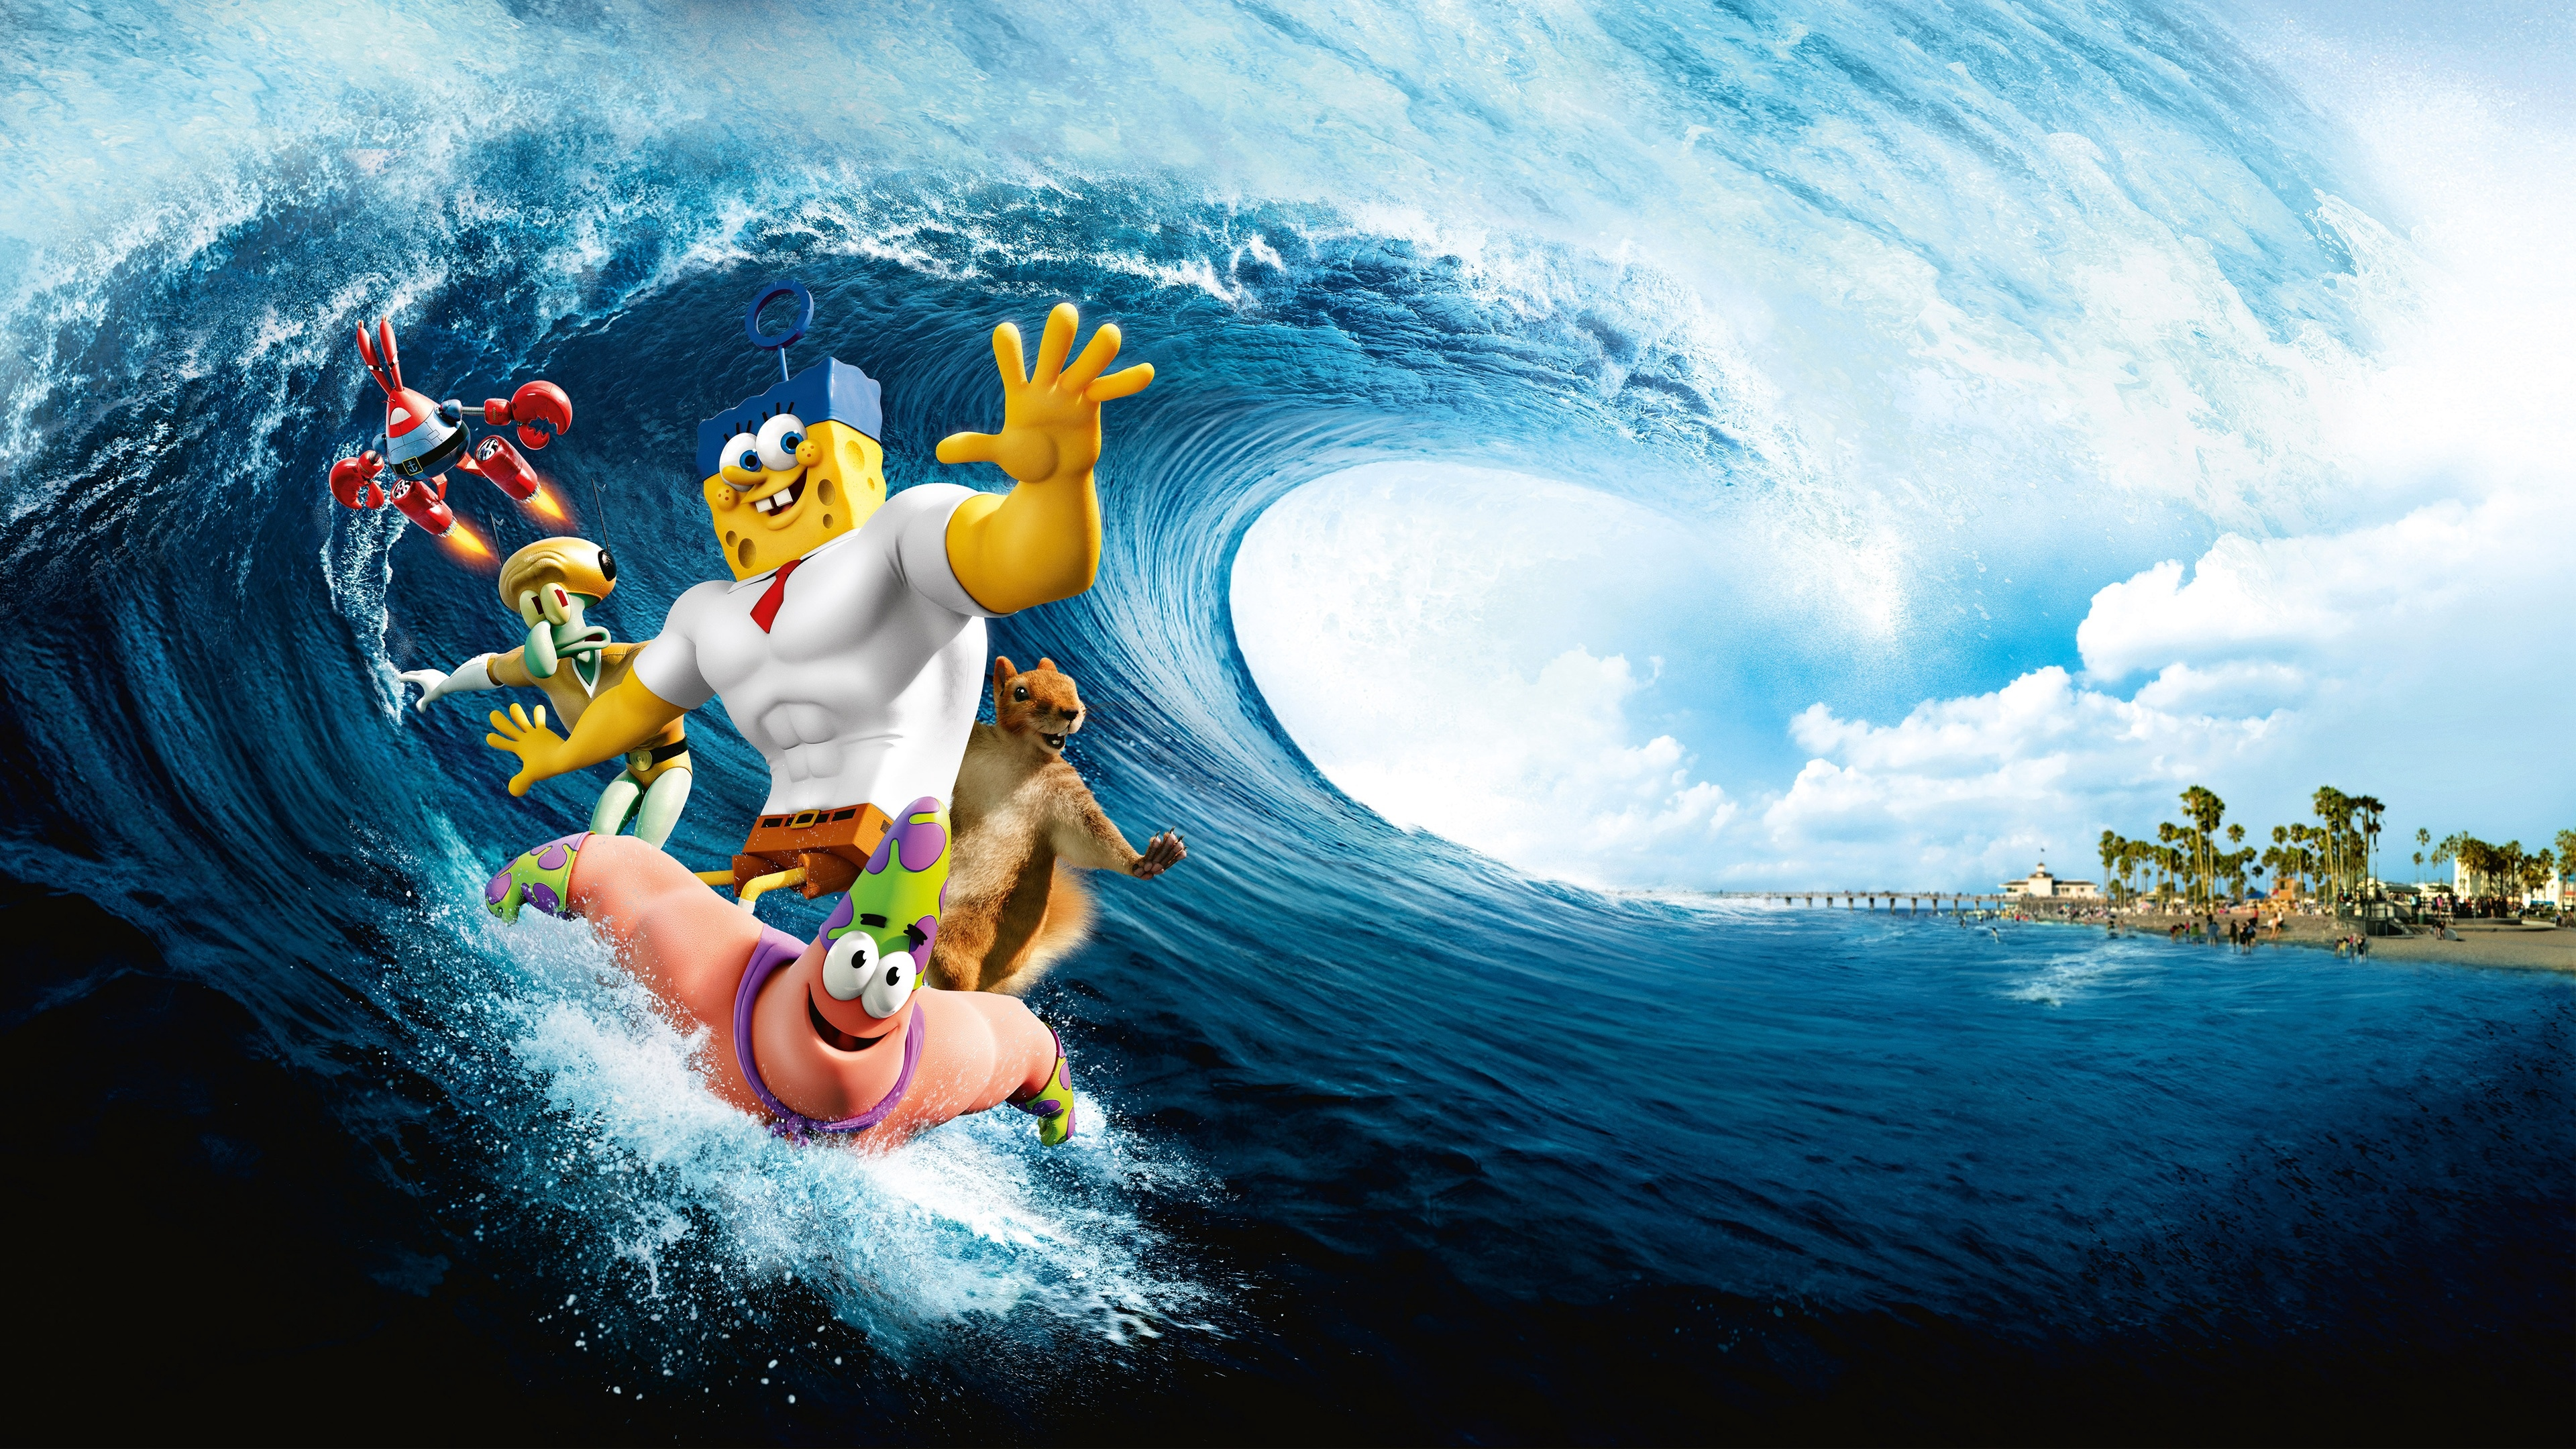 the spongebob movie sponge out of water the spongebob movie art wave 4k 1539368191 - the spongebob movie sponge out of water, the spongebob movie, art, wave 4k - the spongebob movie sponge out of water, the spongebob movie, art